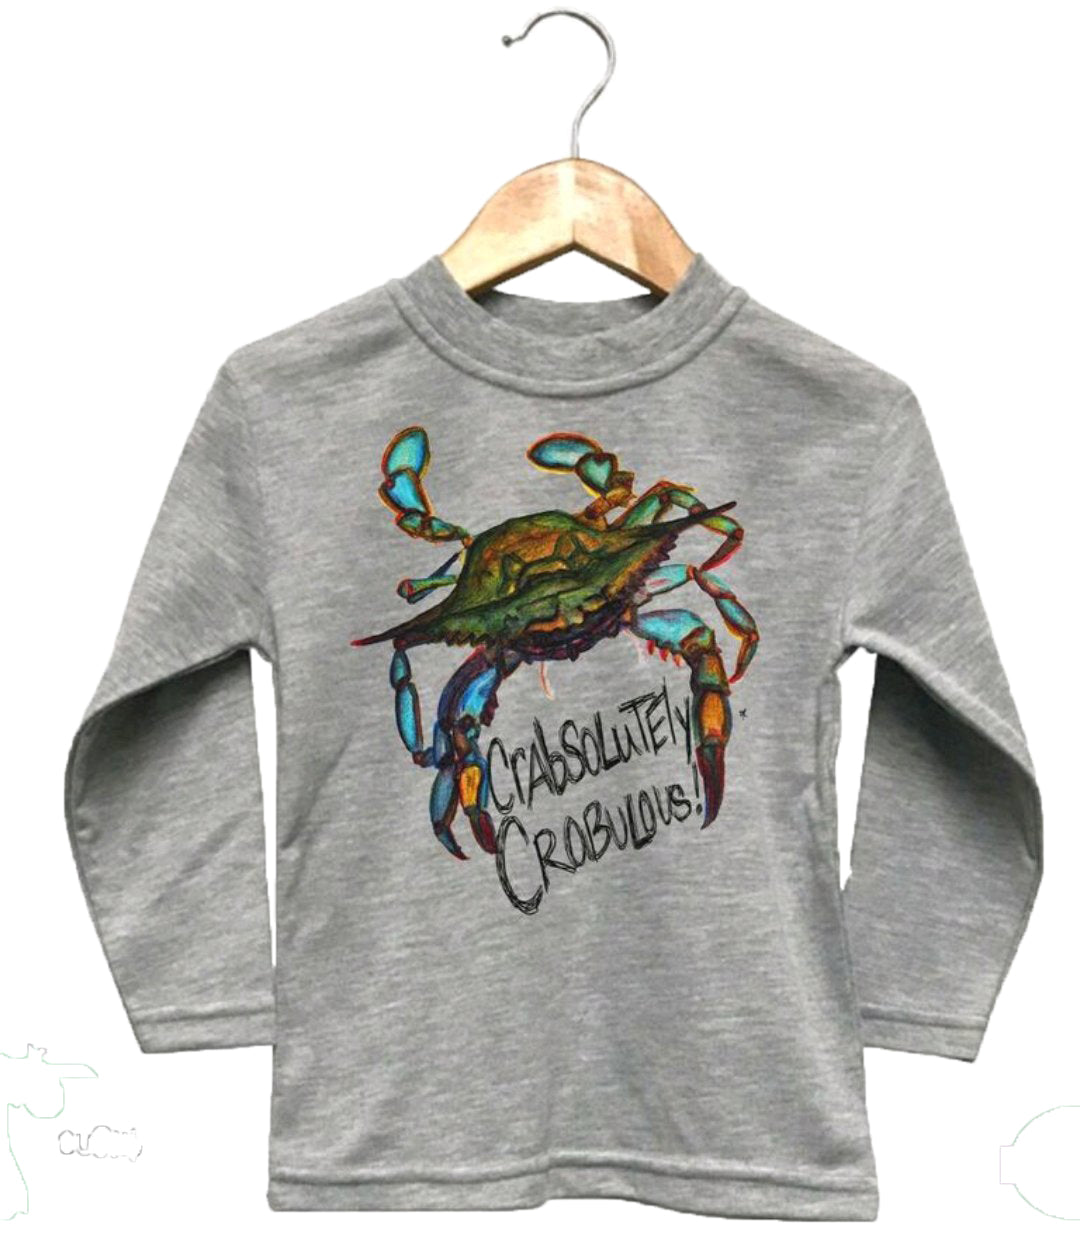 Crabsolutey Crabulous Toddler Long Sleeve T-Shirt